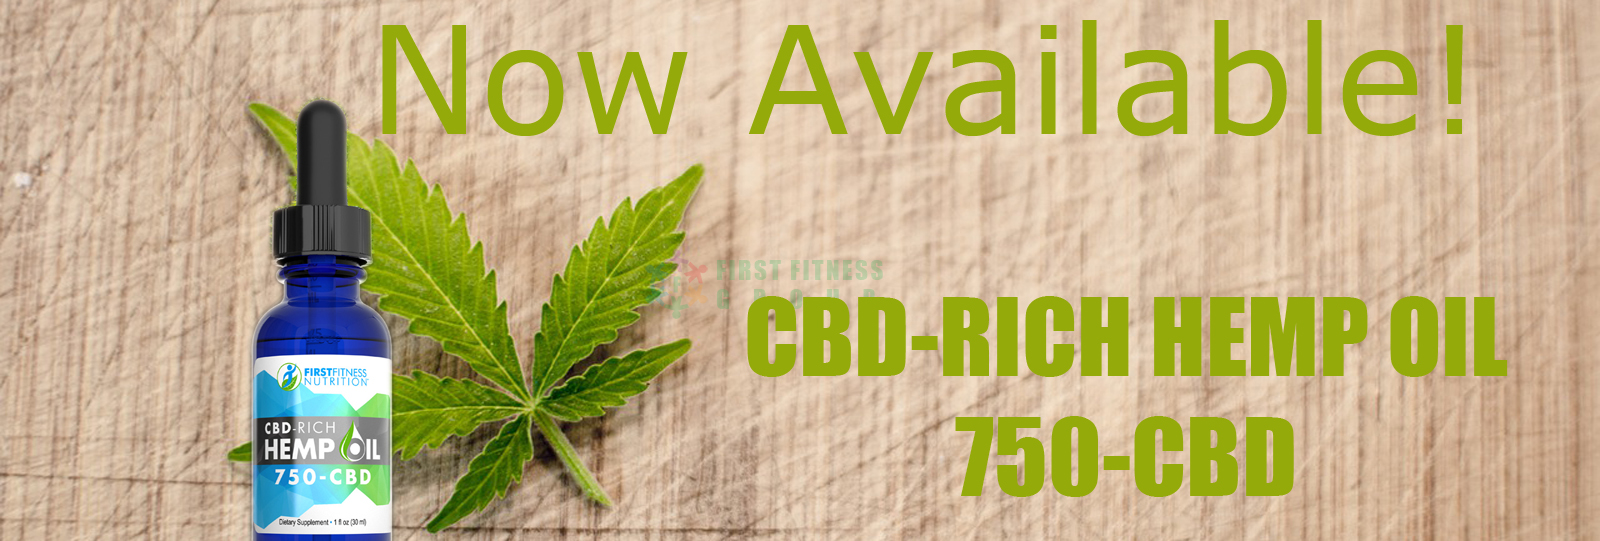 750 CBD-Rich Hemp Oil